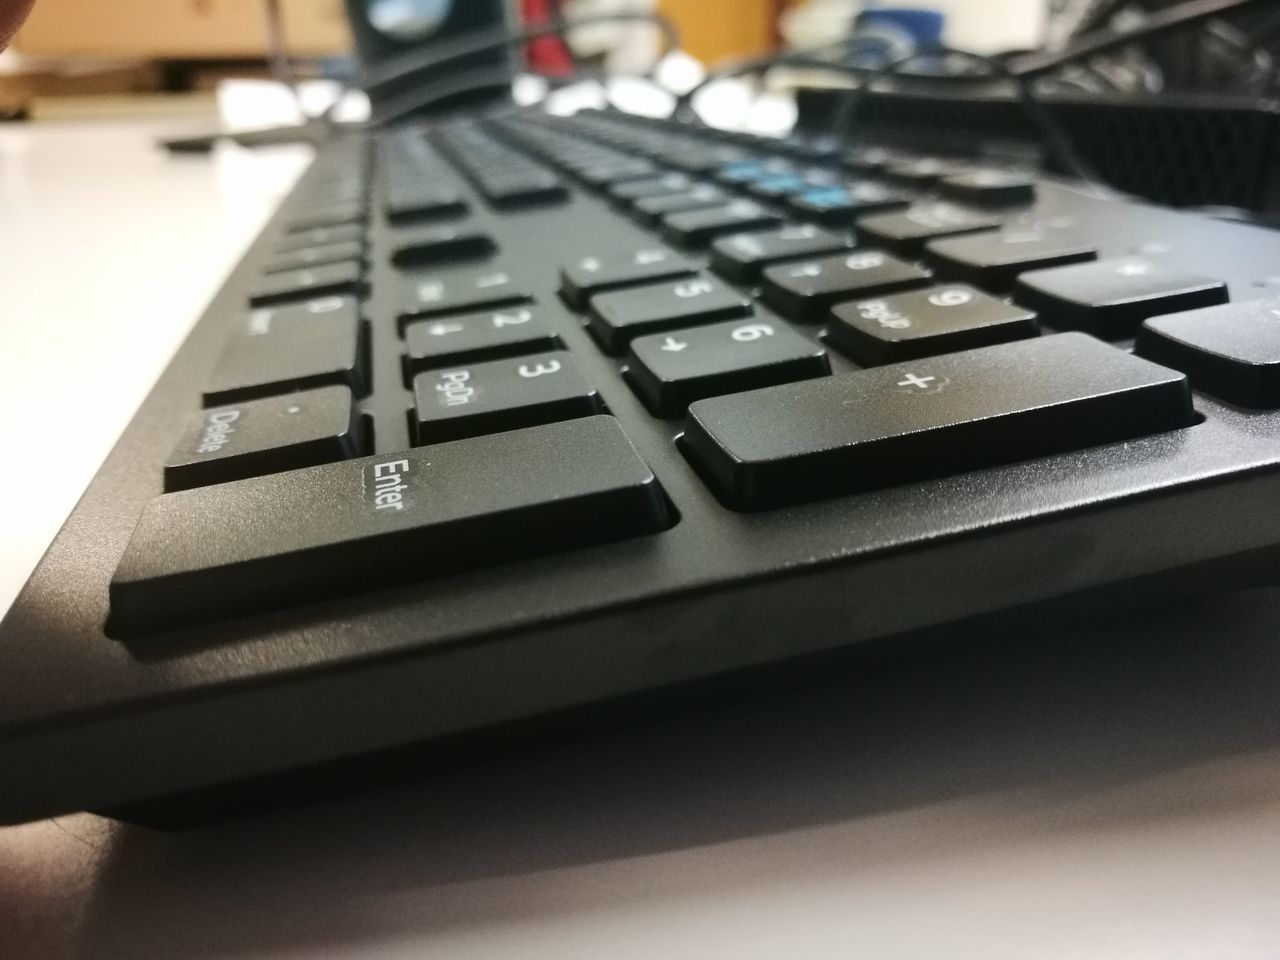 computer keyboard, technology, close-up, indoors, connection, computer key, table, text, no people, communication, computer, keyboard, wireless technology, day